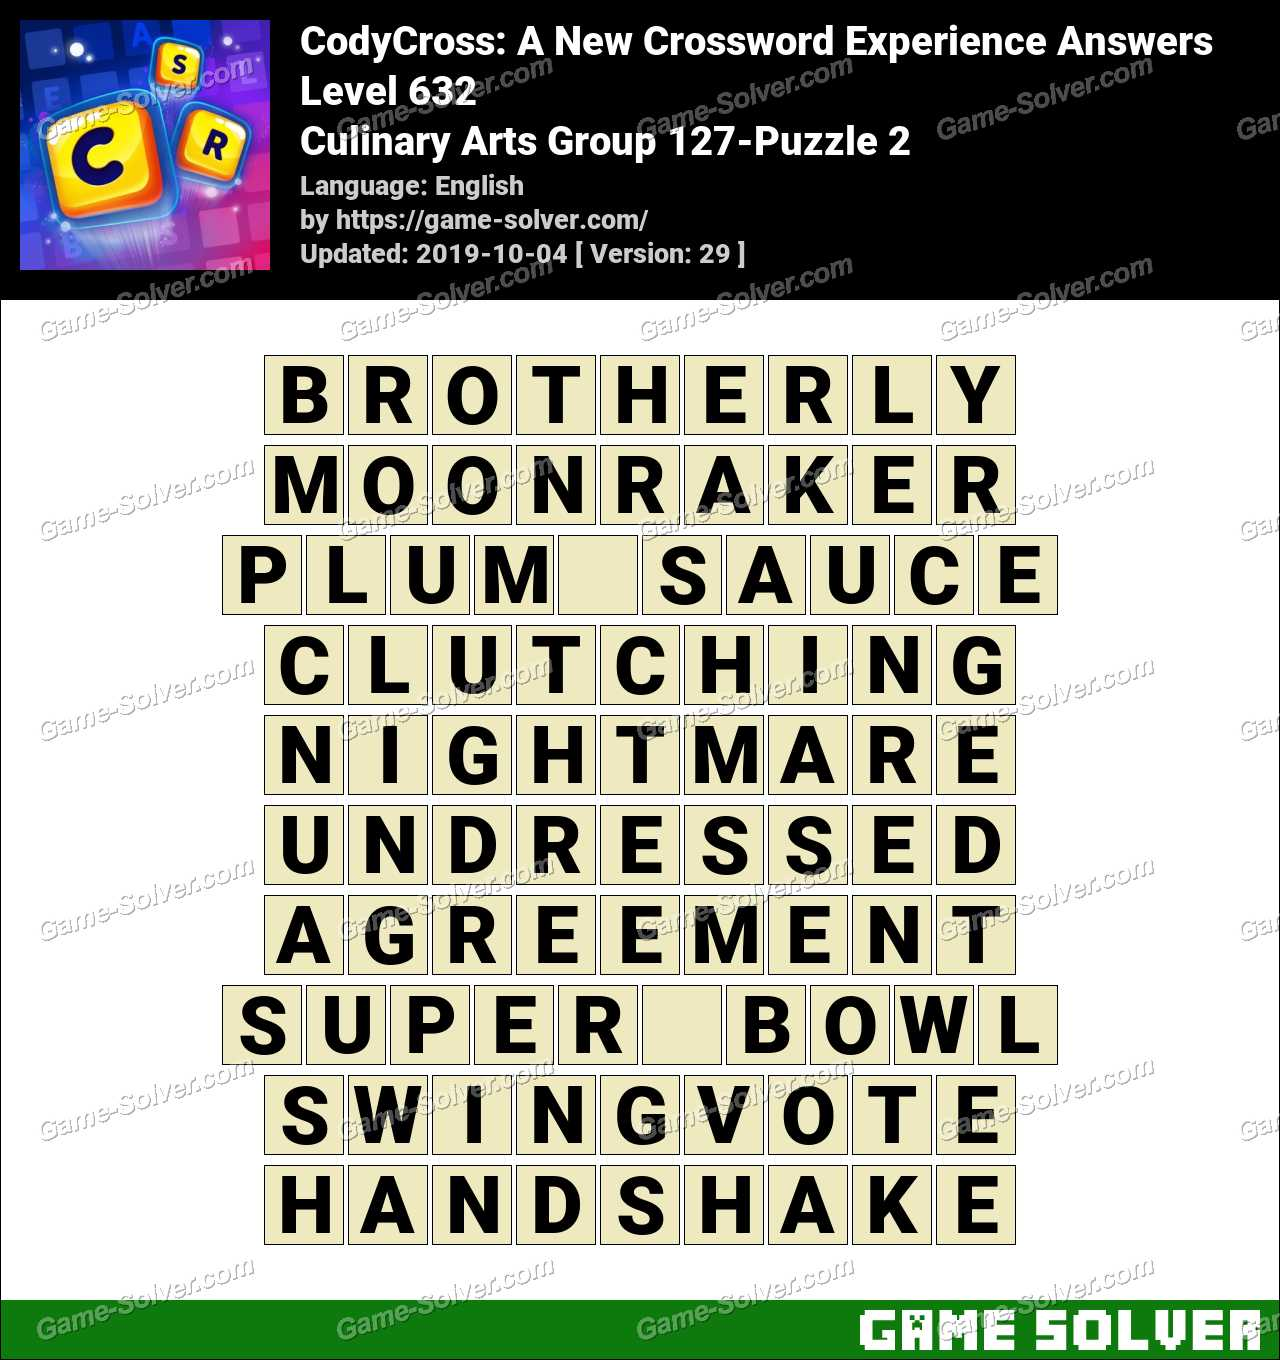 CodyCross Culinary Arts Group 127-Puzzle 2 Answers